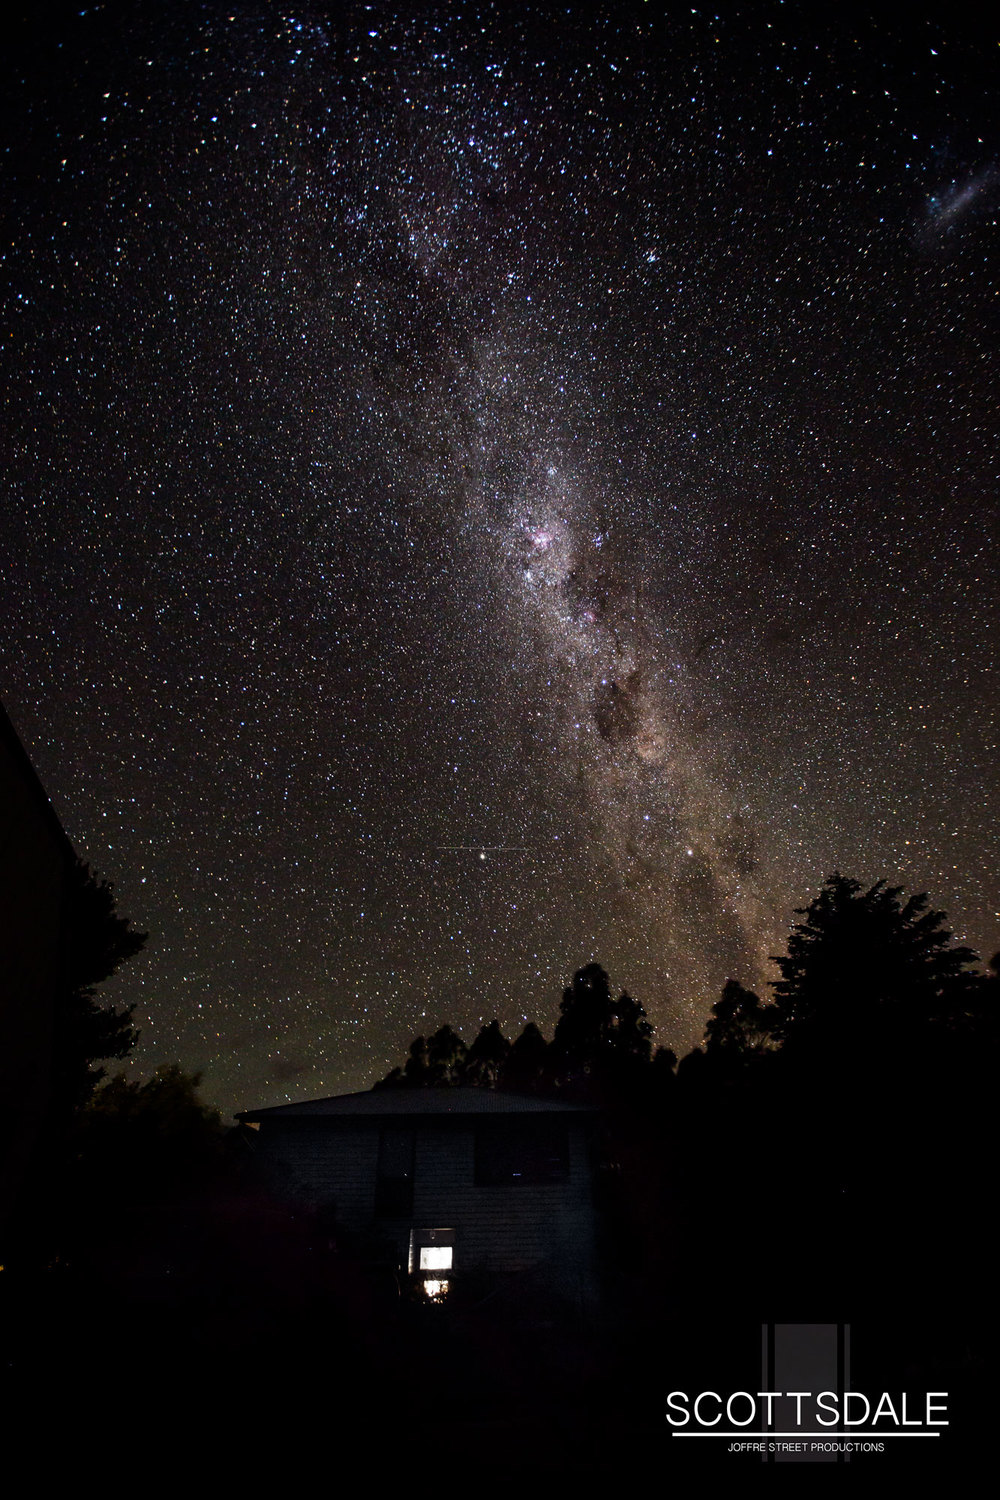 Milky Way over Scottsdale, Tasmania.